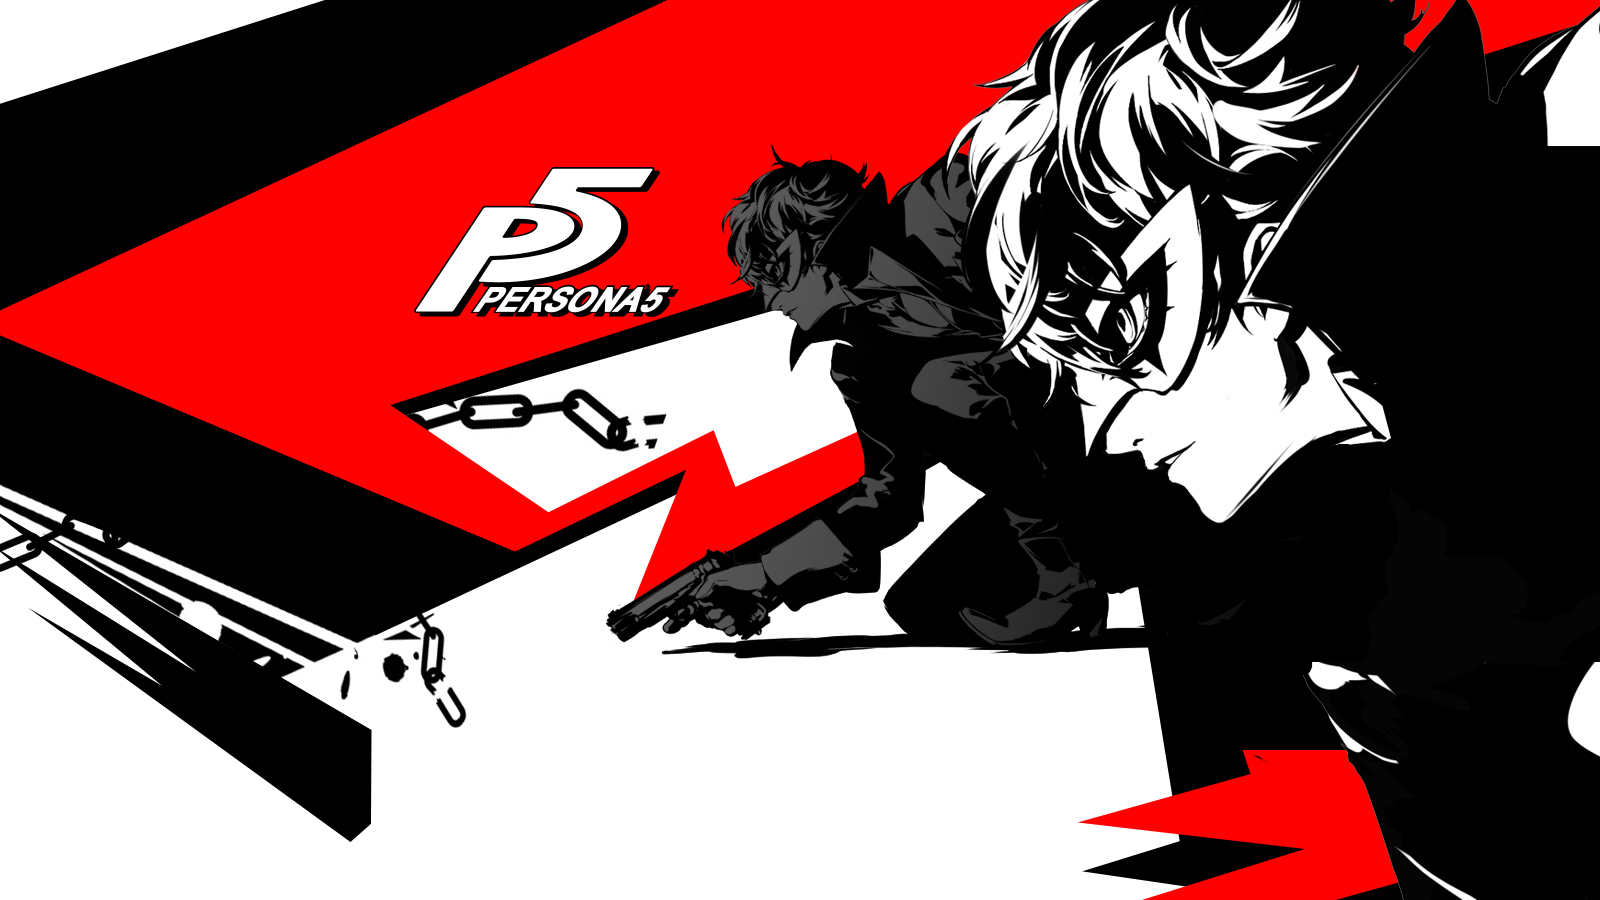 Persona 5 Backgrounds on Wallpapers Vista